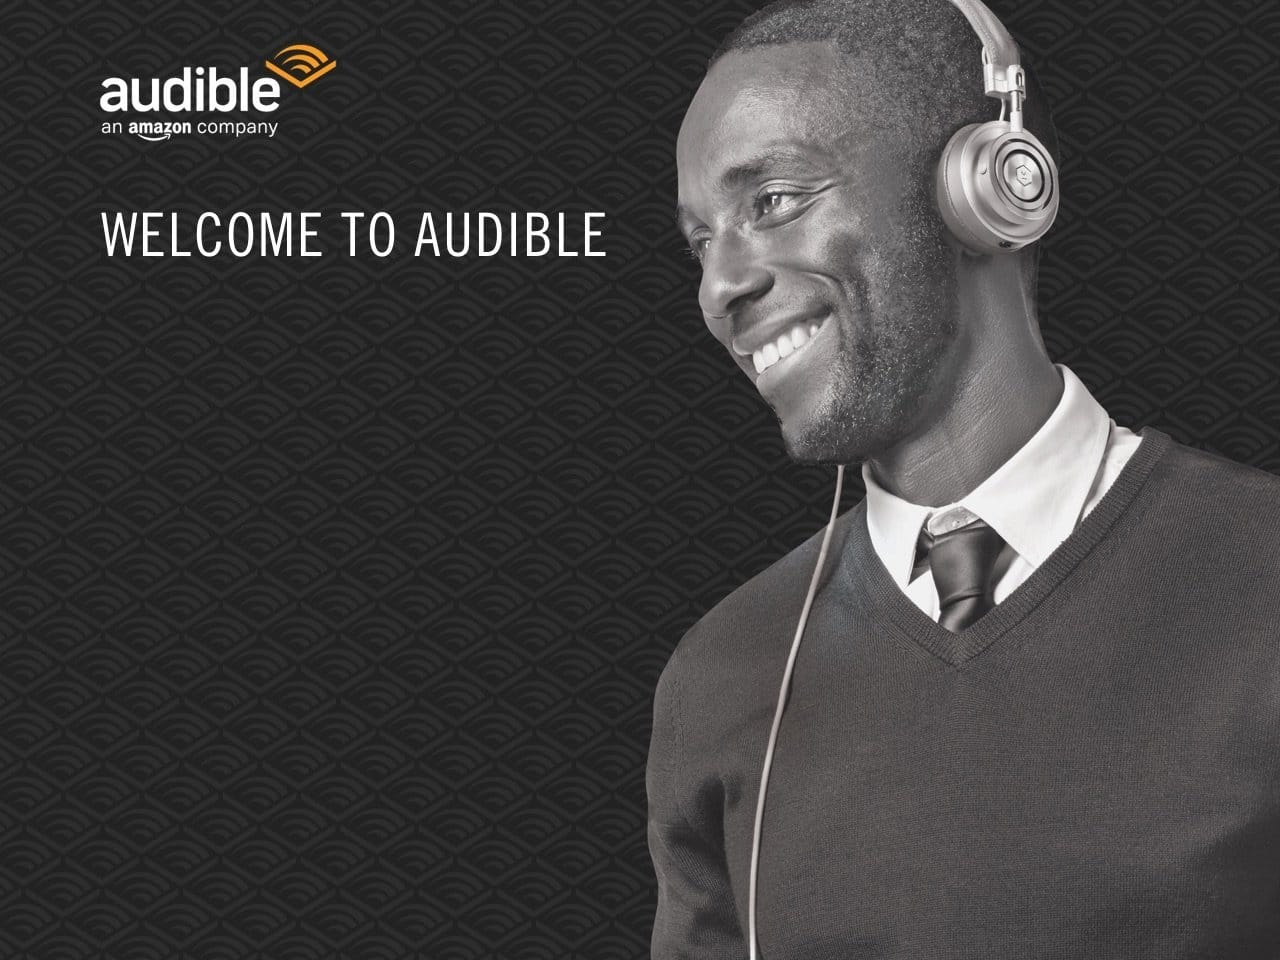 FREE credit for 1 Audiobook from Audible. *Live again* EMPOWER offer